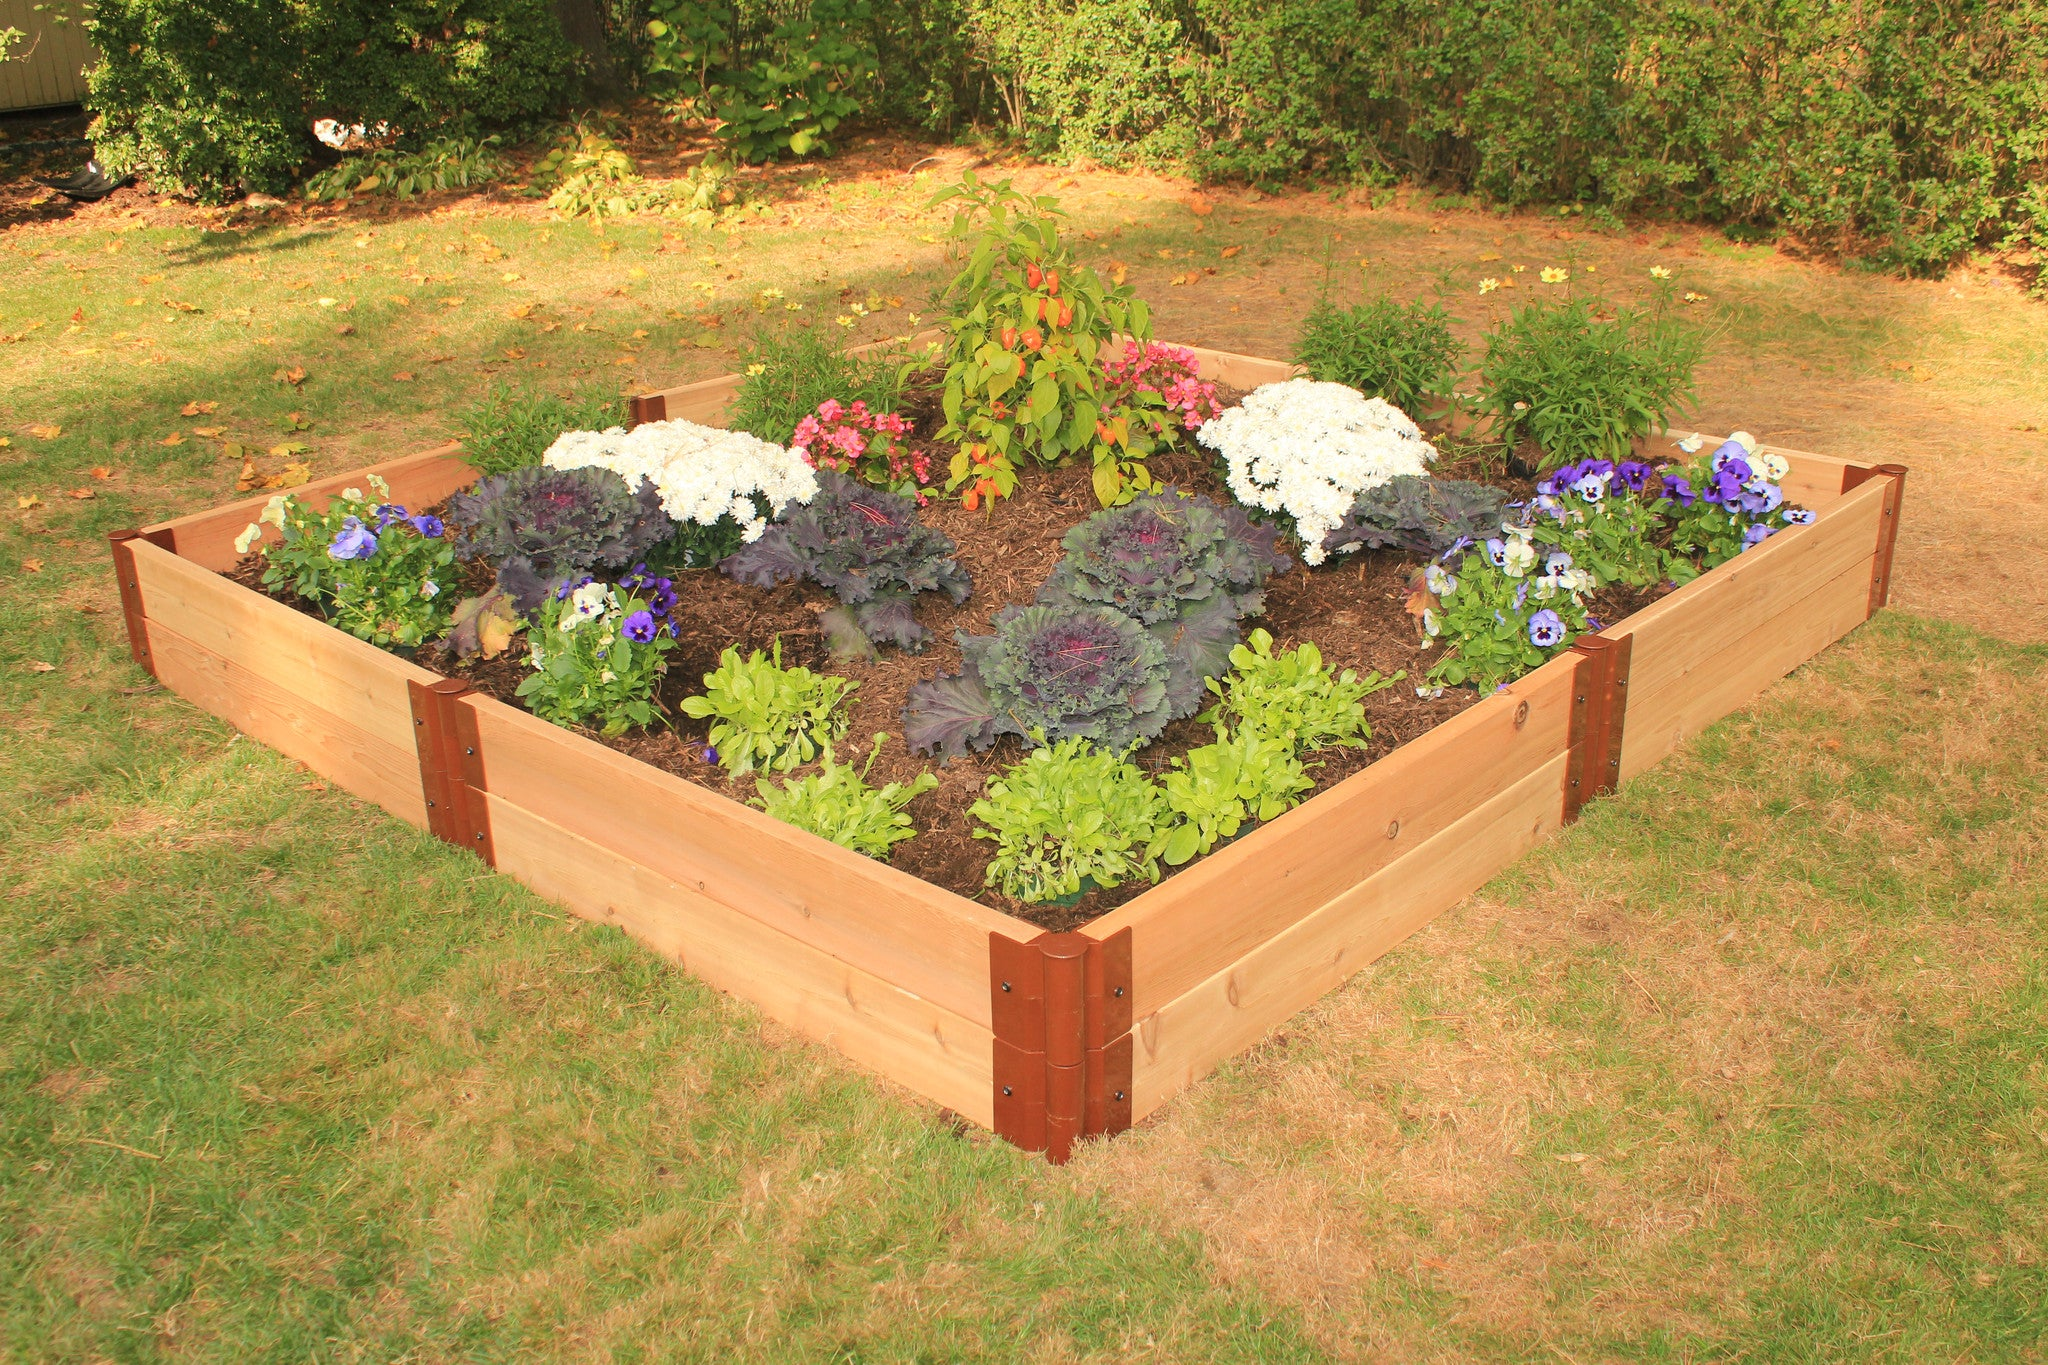 ... Frame It All   Two Inch Series   Modular Cedar Raised Garden Bed Kits Raised  Garden